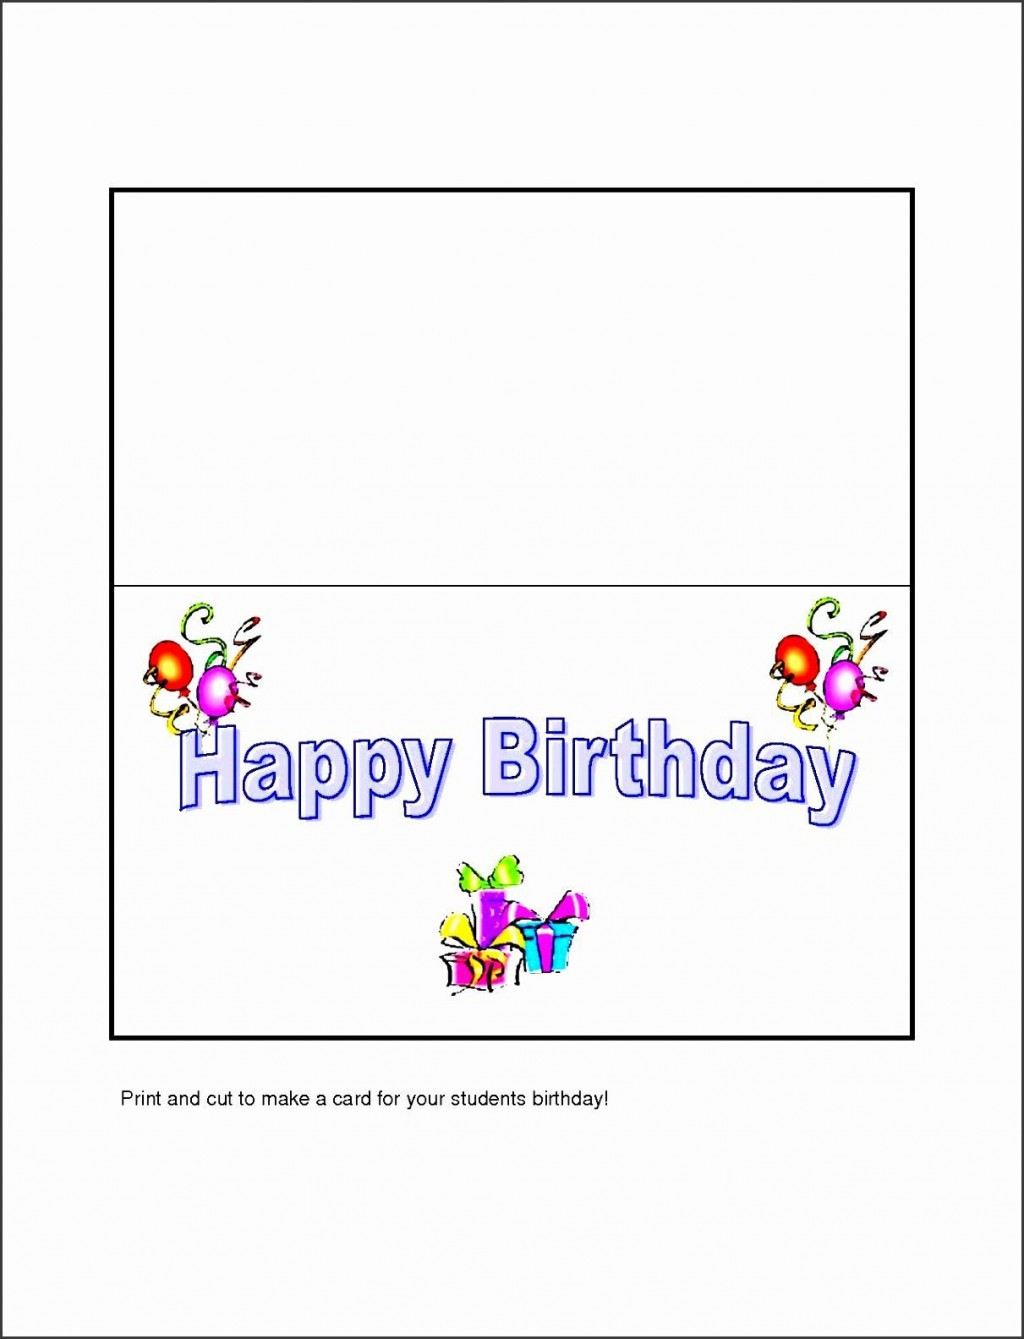 004 Frightening Birthday Card Template Word Highest Clarity  Blank Greeting Microsoft 2010Large